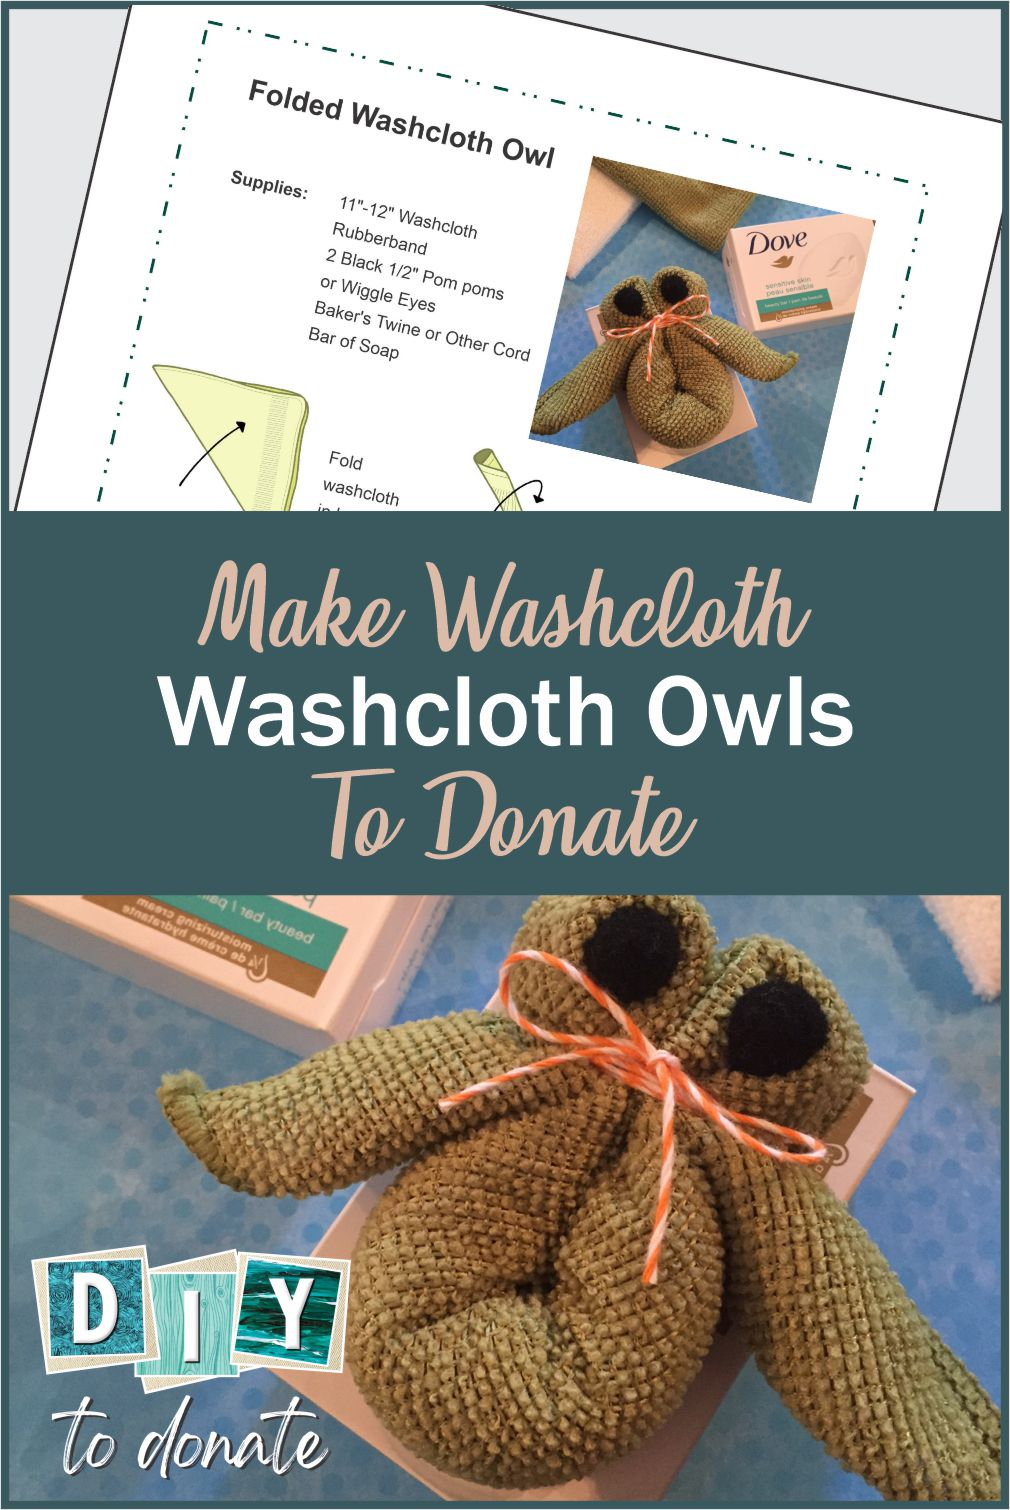 Donate soap to a child in need and include a folded owl washcloth to make it a special gift. Download our PDF instructions and find out where to donate. #diytodonate #diy #donate #foldedwashcloths #soap #inneed #specialgifts